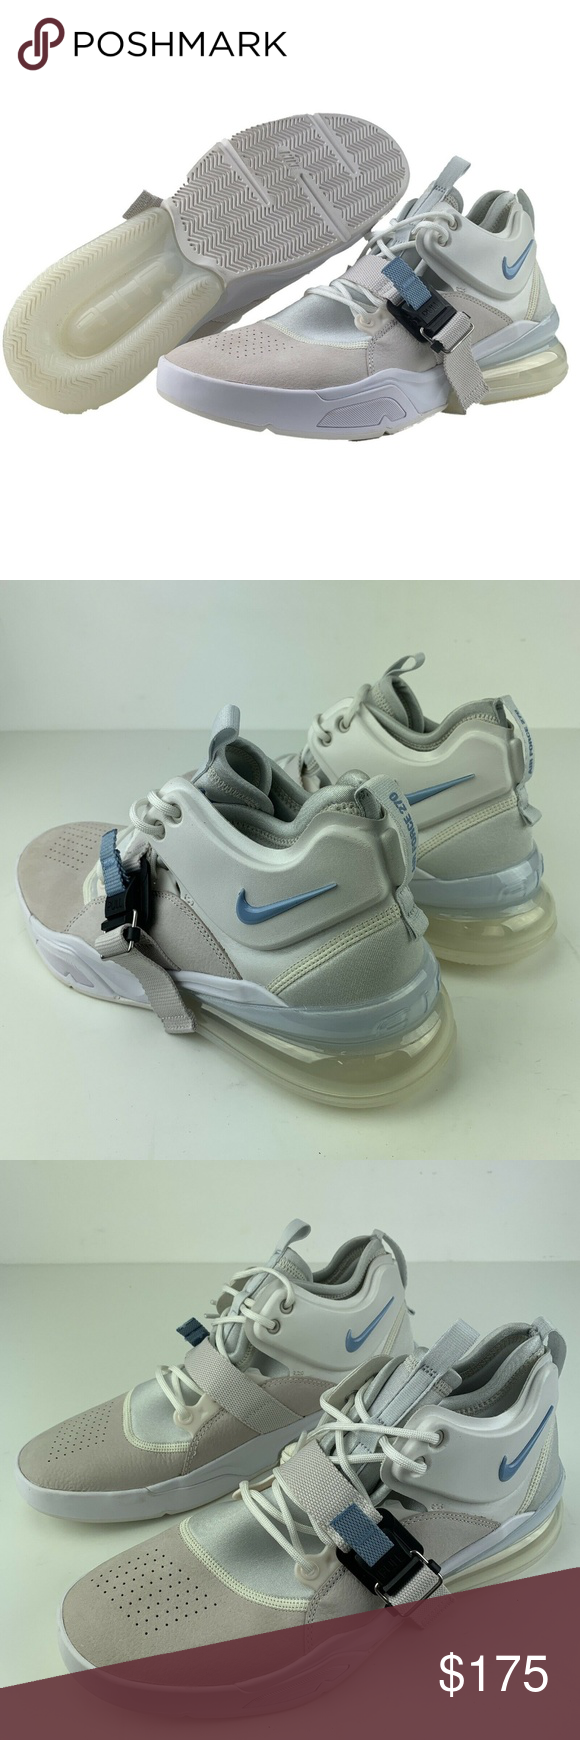 278553dffa1c18 Nike Air Force 270 Nike Air Force 270 Phantom White Leche Blue Basketball  Shoes Sneakers Brand New Shoes